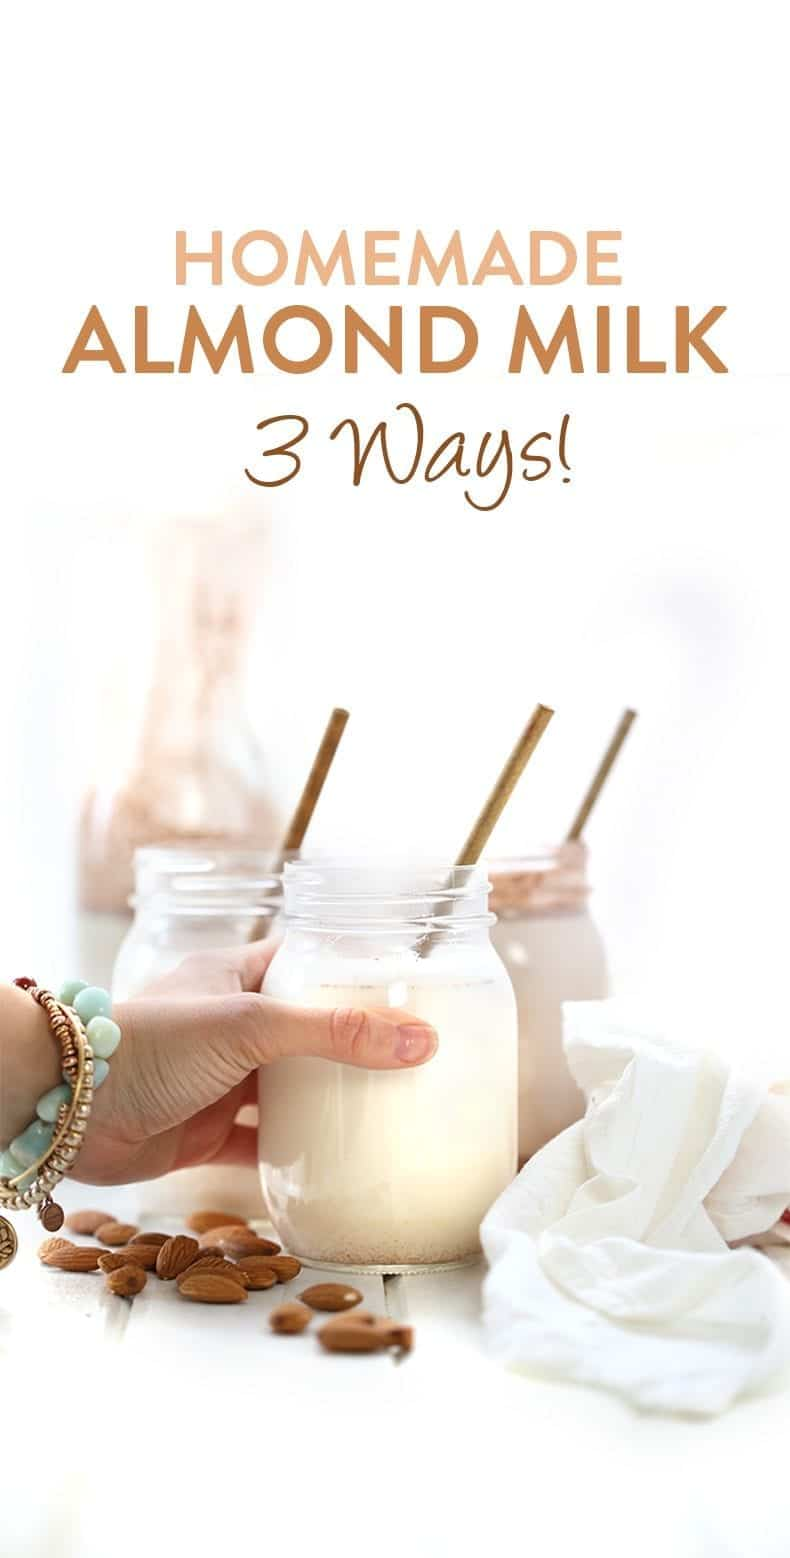 An easy video tutorial on how to make homemade almond milk, 3 different ways! From classic vanilla, to spicy chai and decadent chocolate, this step-by-step tutorial will teach you how #homemadealmondmilk #almondmilk #diyalmondmilk